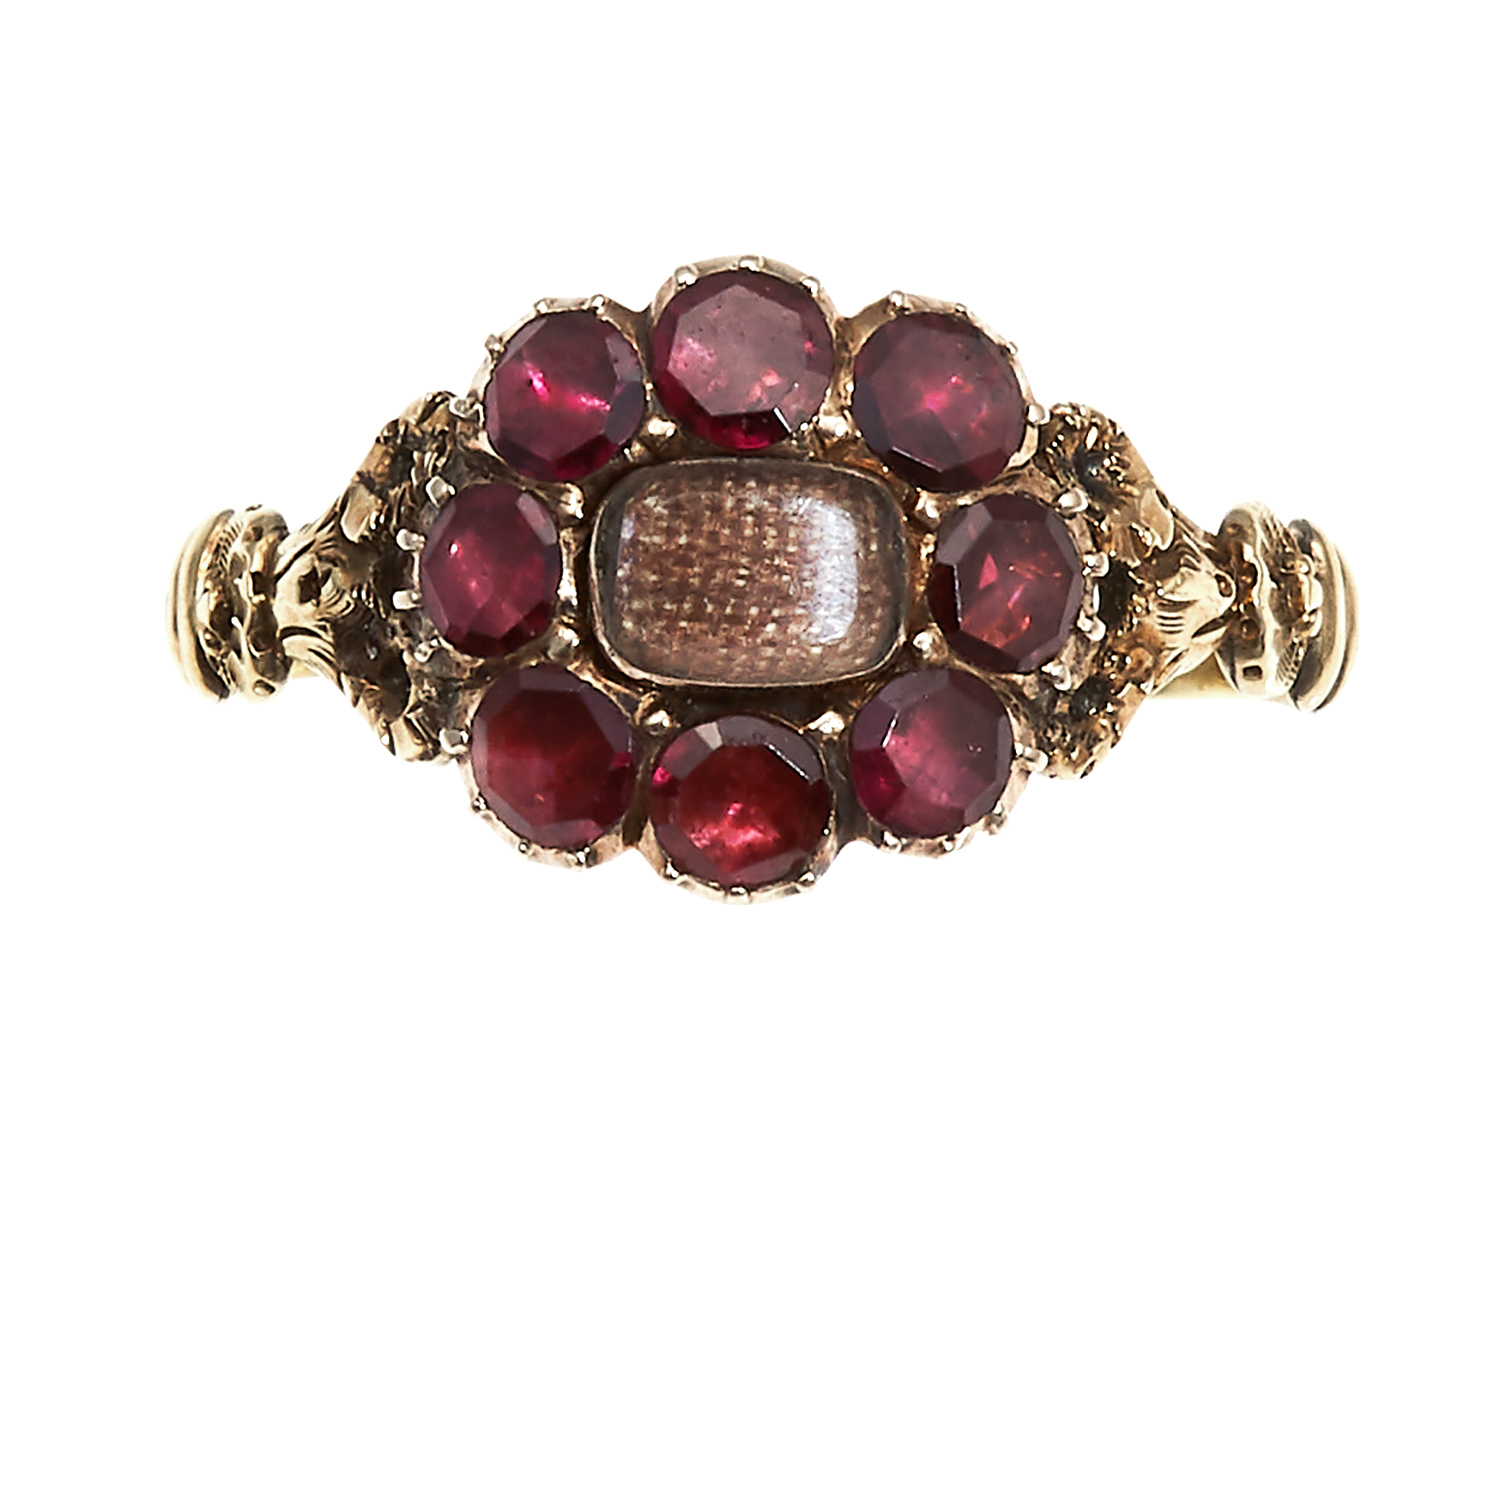 Los 46 - AN ANTIQUE HAIRWORK AND GARNET MOURNING RING in high carat yellow gold, set with a central panel